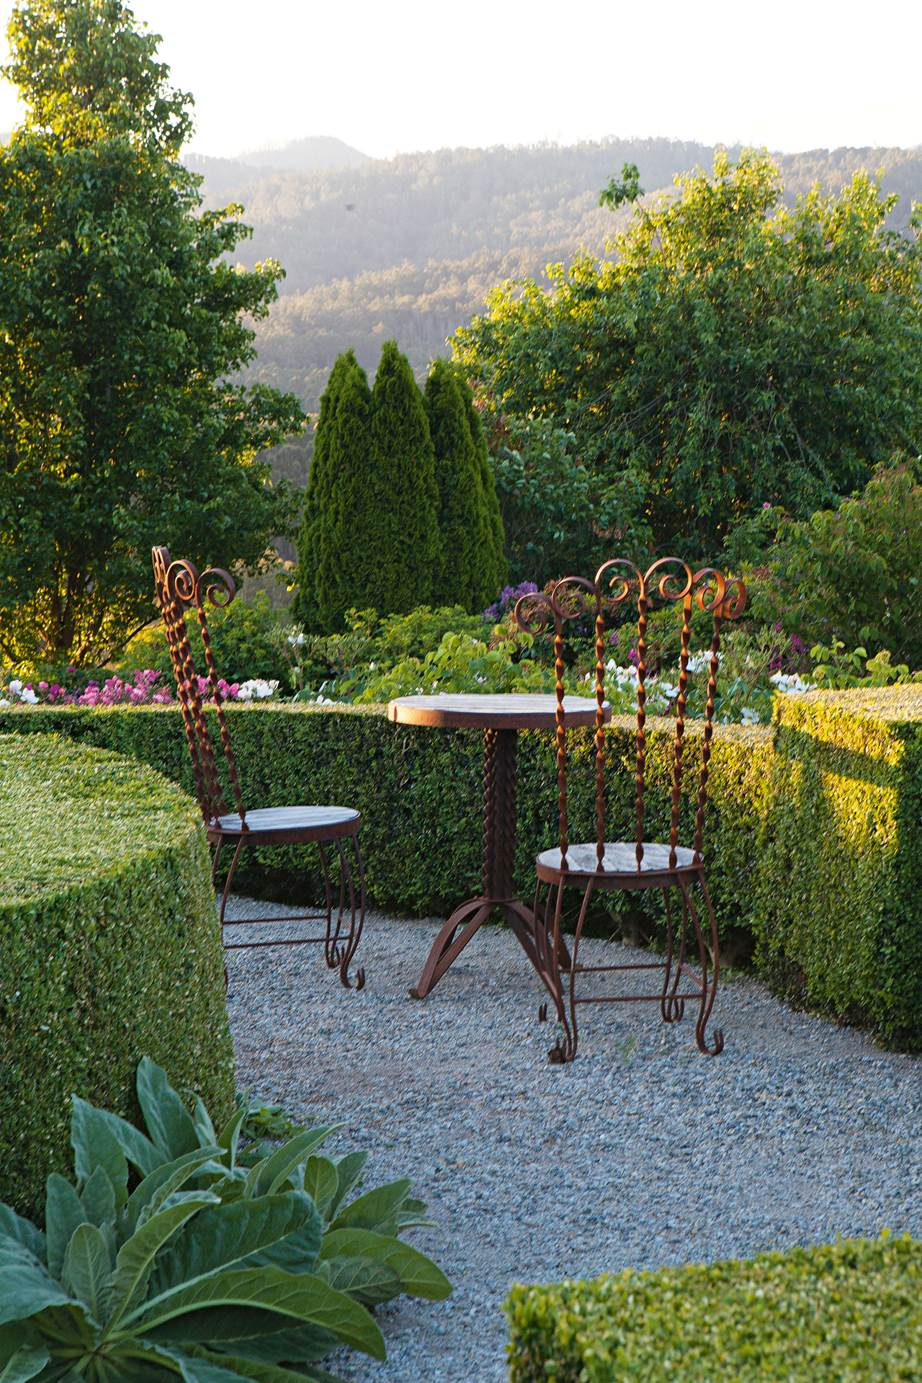 A tiered formal garden on a slope with magnificent views